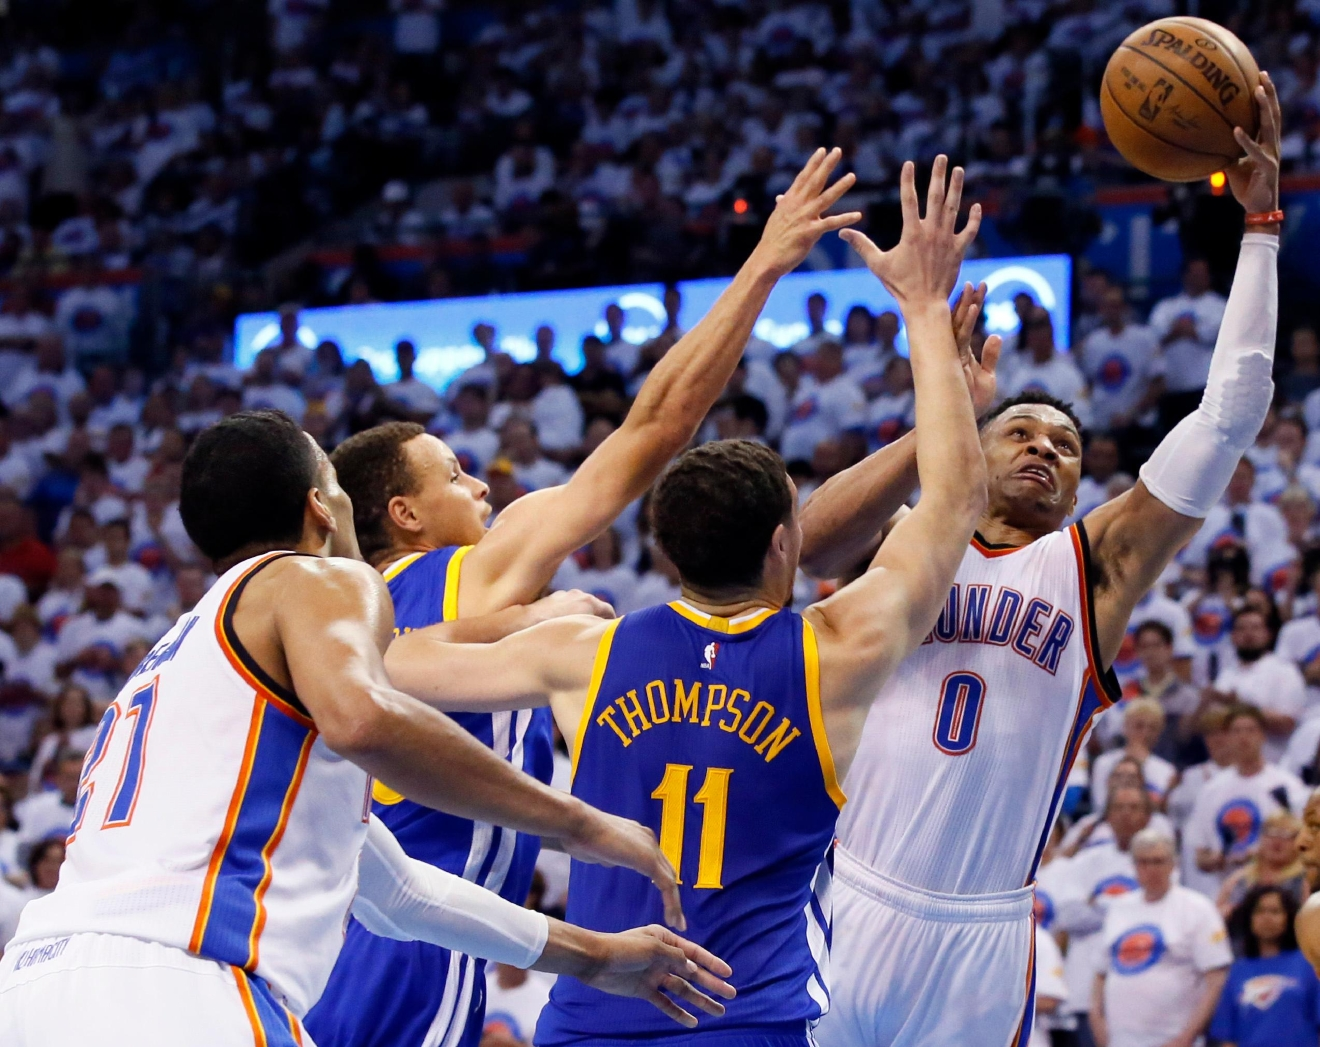 Oklahoma City Thunder guard Russell Westbrook (0) goes after a loose ball against Golden State Warriors guard Stephen Curry (30) and guard Klay Thompson (11) as guard Andre Roberson (21) looks on during the second half in Game 4 of the NBA basketball Western Conference finals in Oklahoma City, Tuesday, May 24, 2016. (AP Photo/Sue Ogrocki)